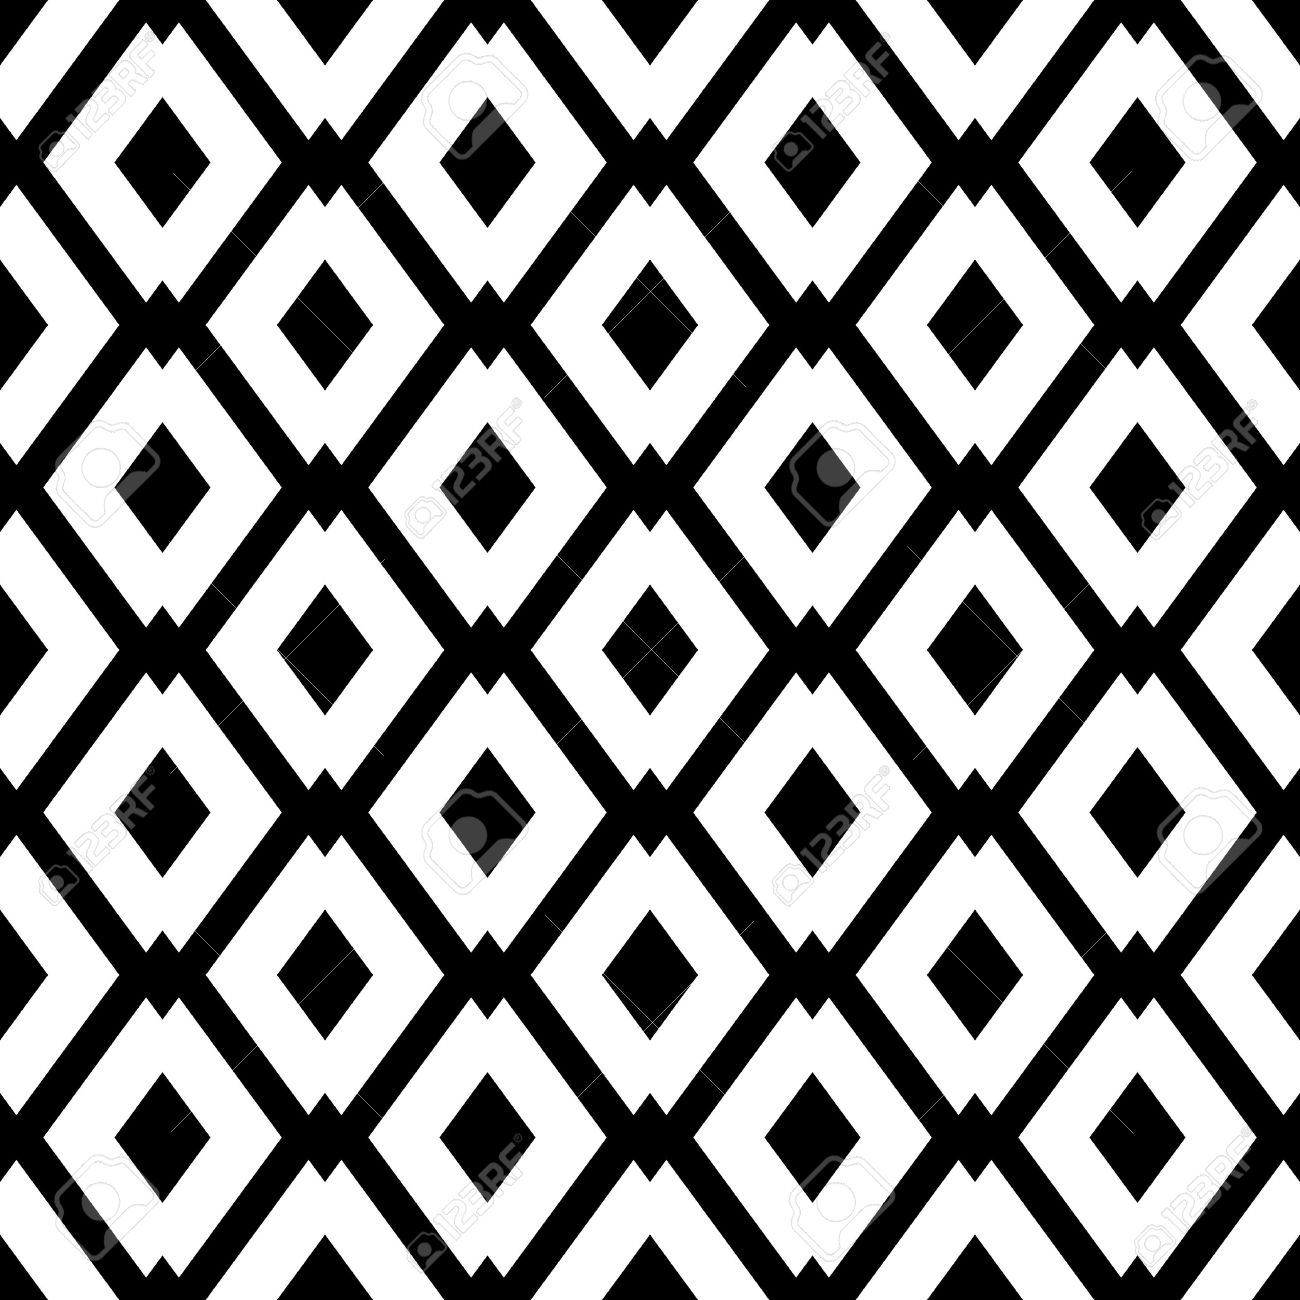 Abstract Geometric Seamless Pattern With Rhombus Simple Black